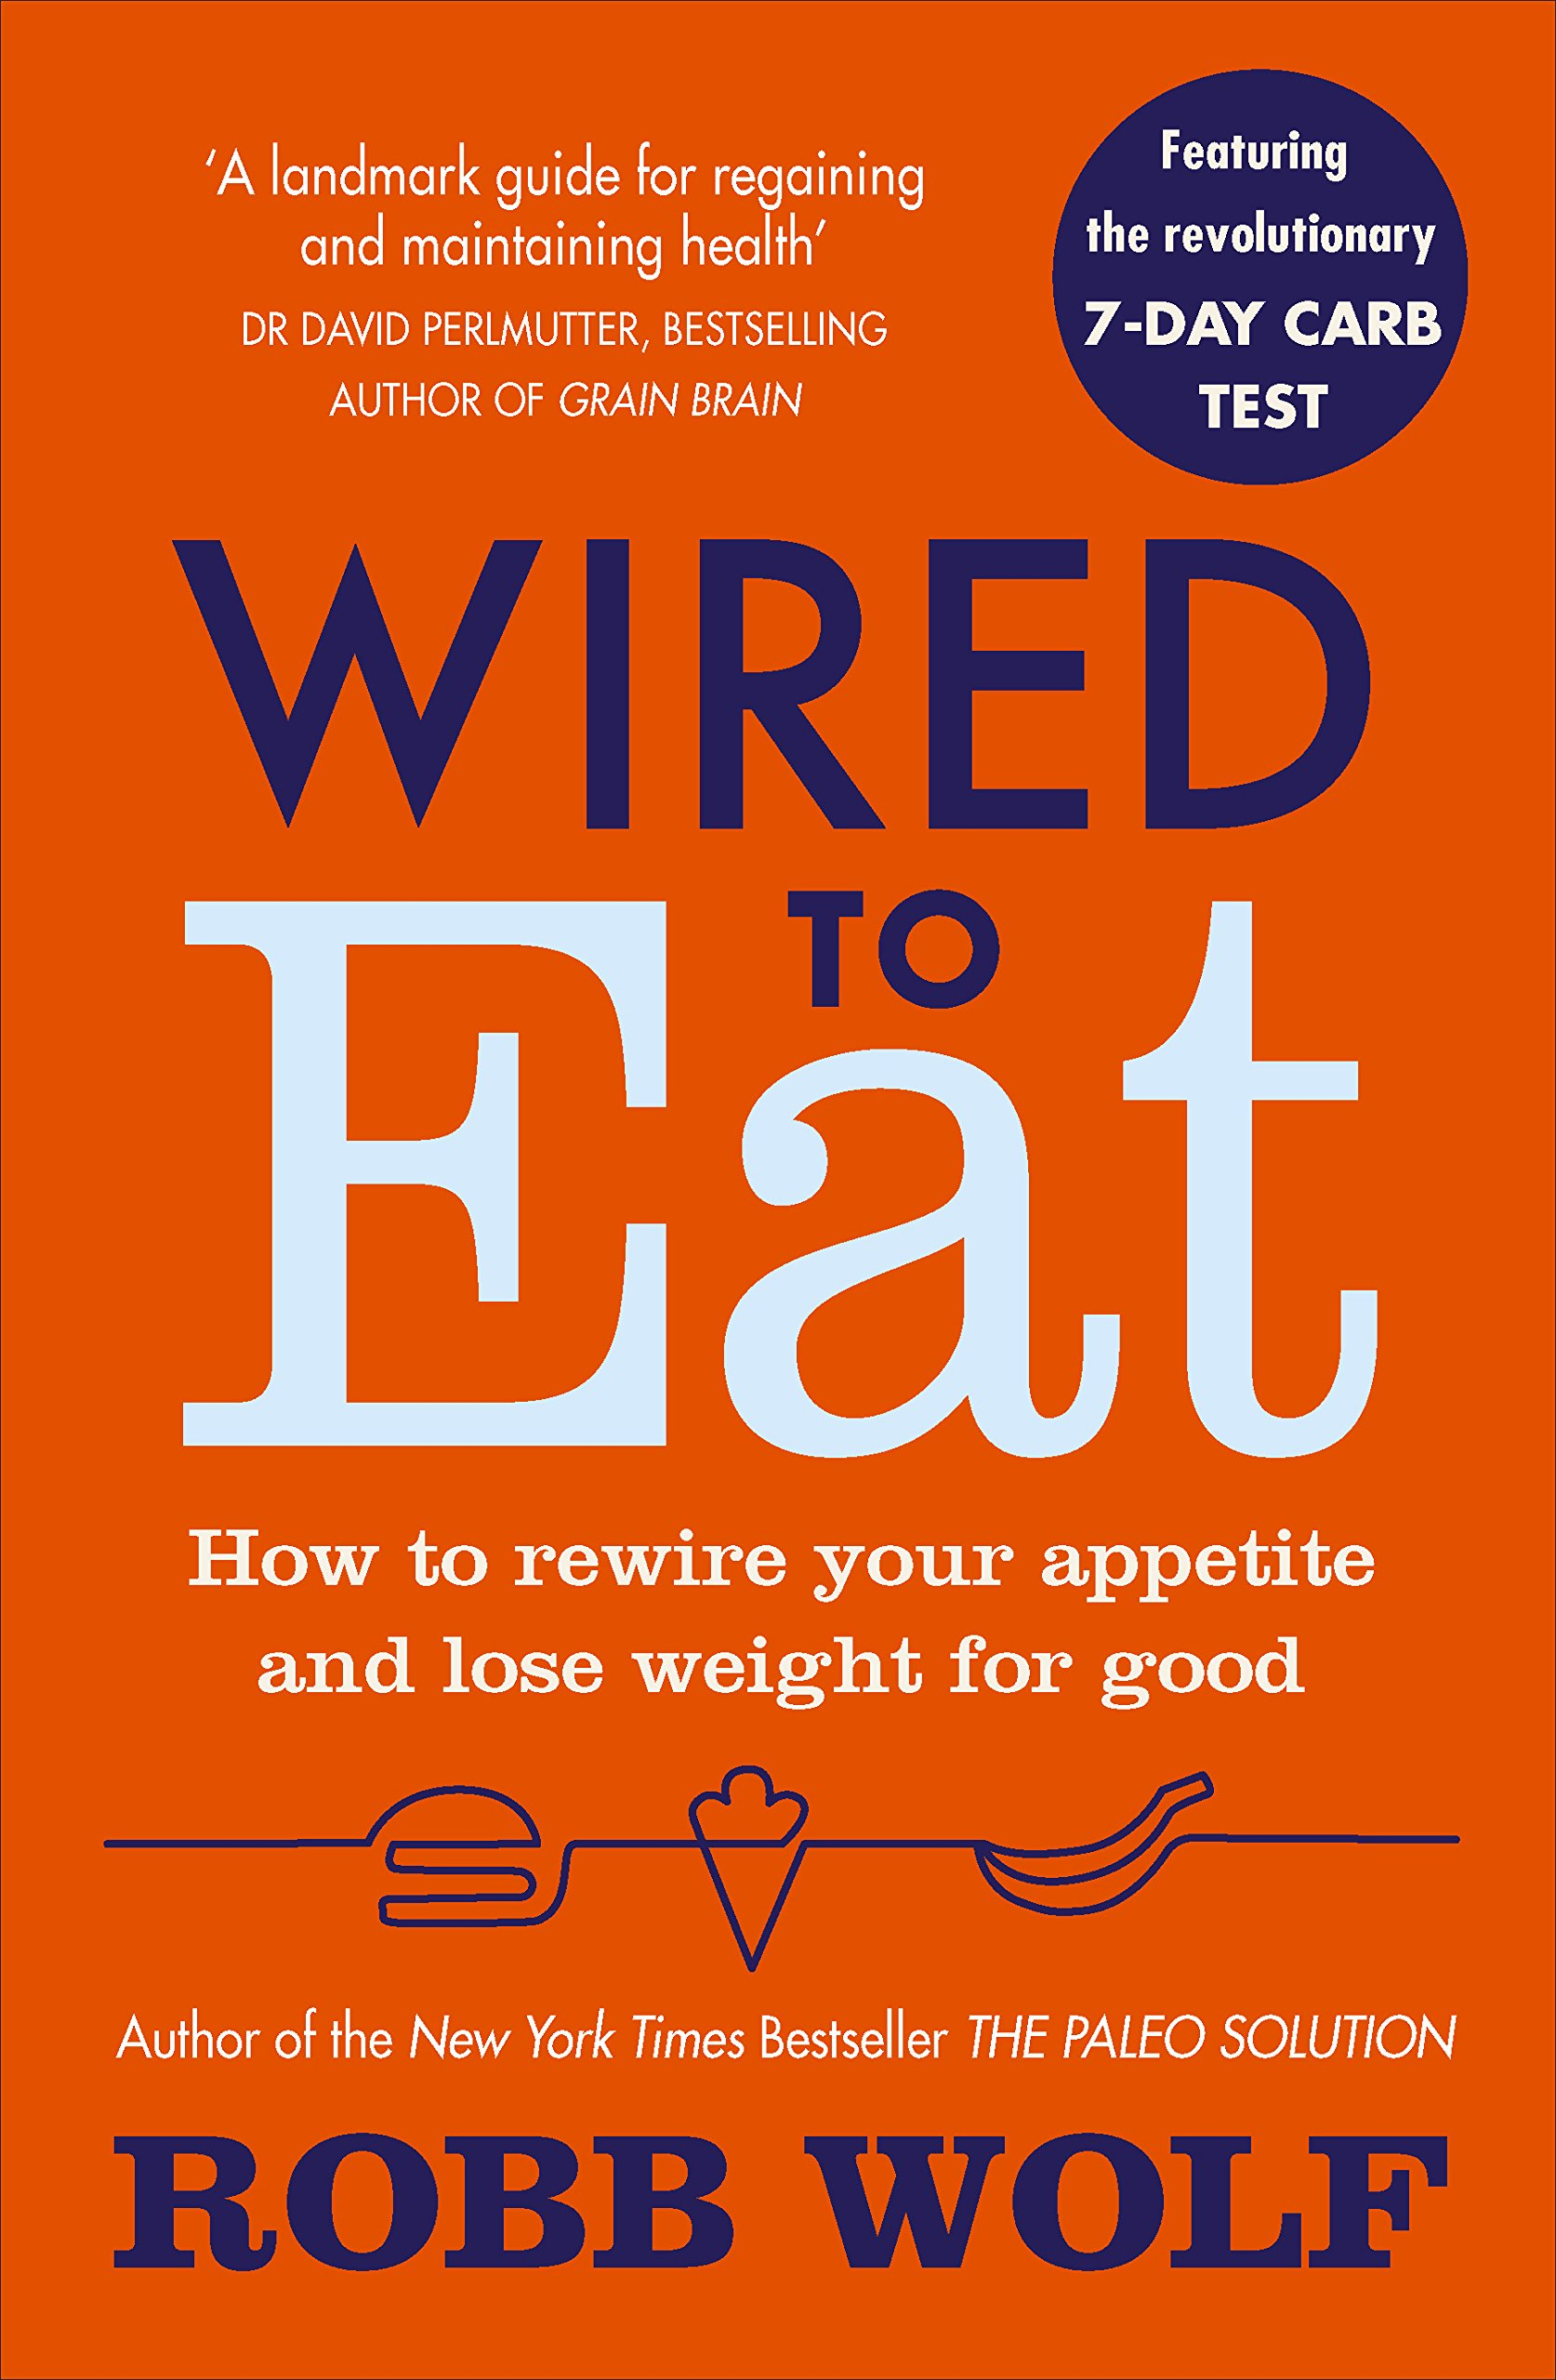 IS IT POSSIBLE TO RE-WIRE YOUR APPETITE